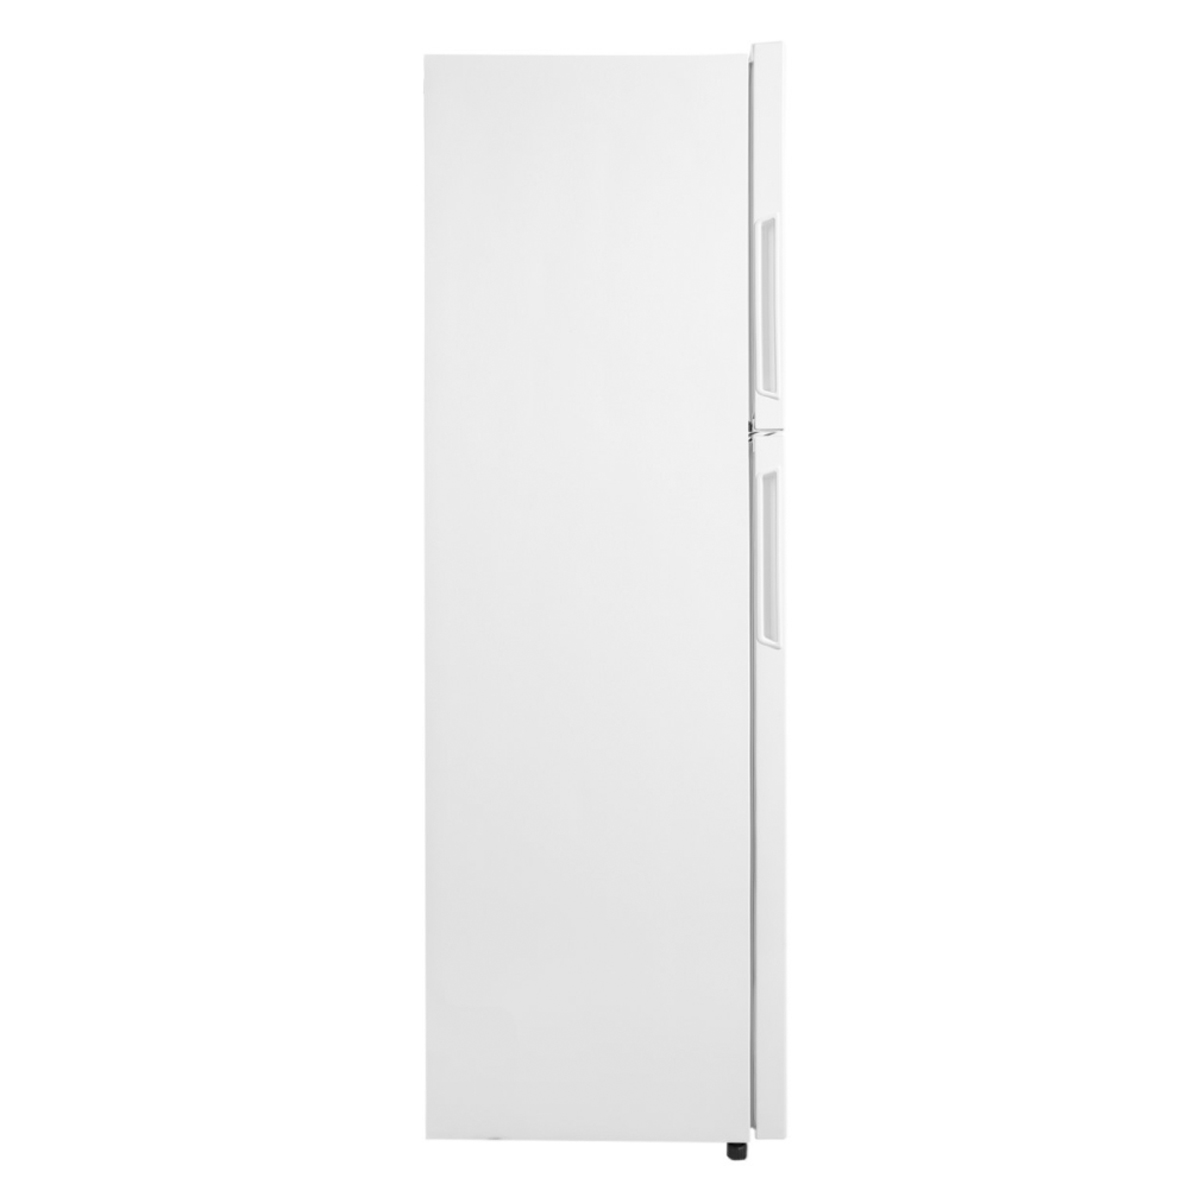 Kelvinator KTB2802WA 275L Top Mount Fridge 56307